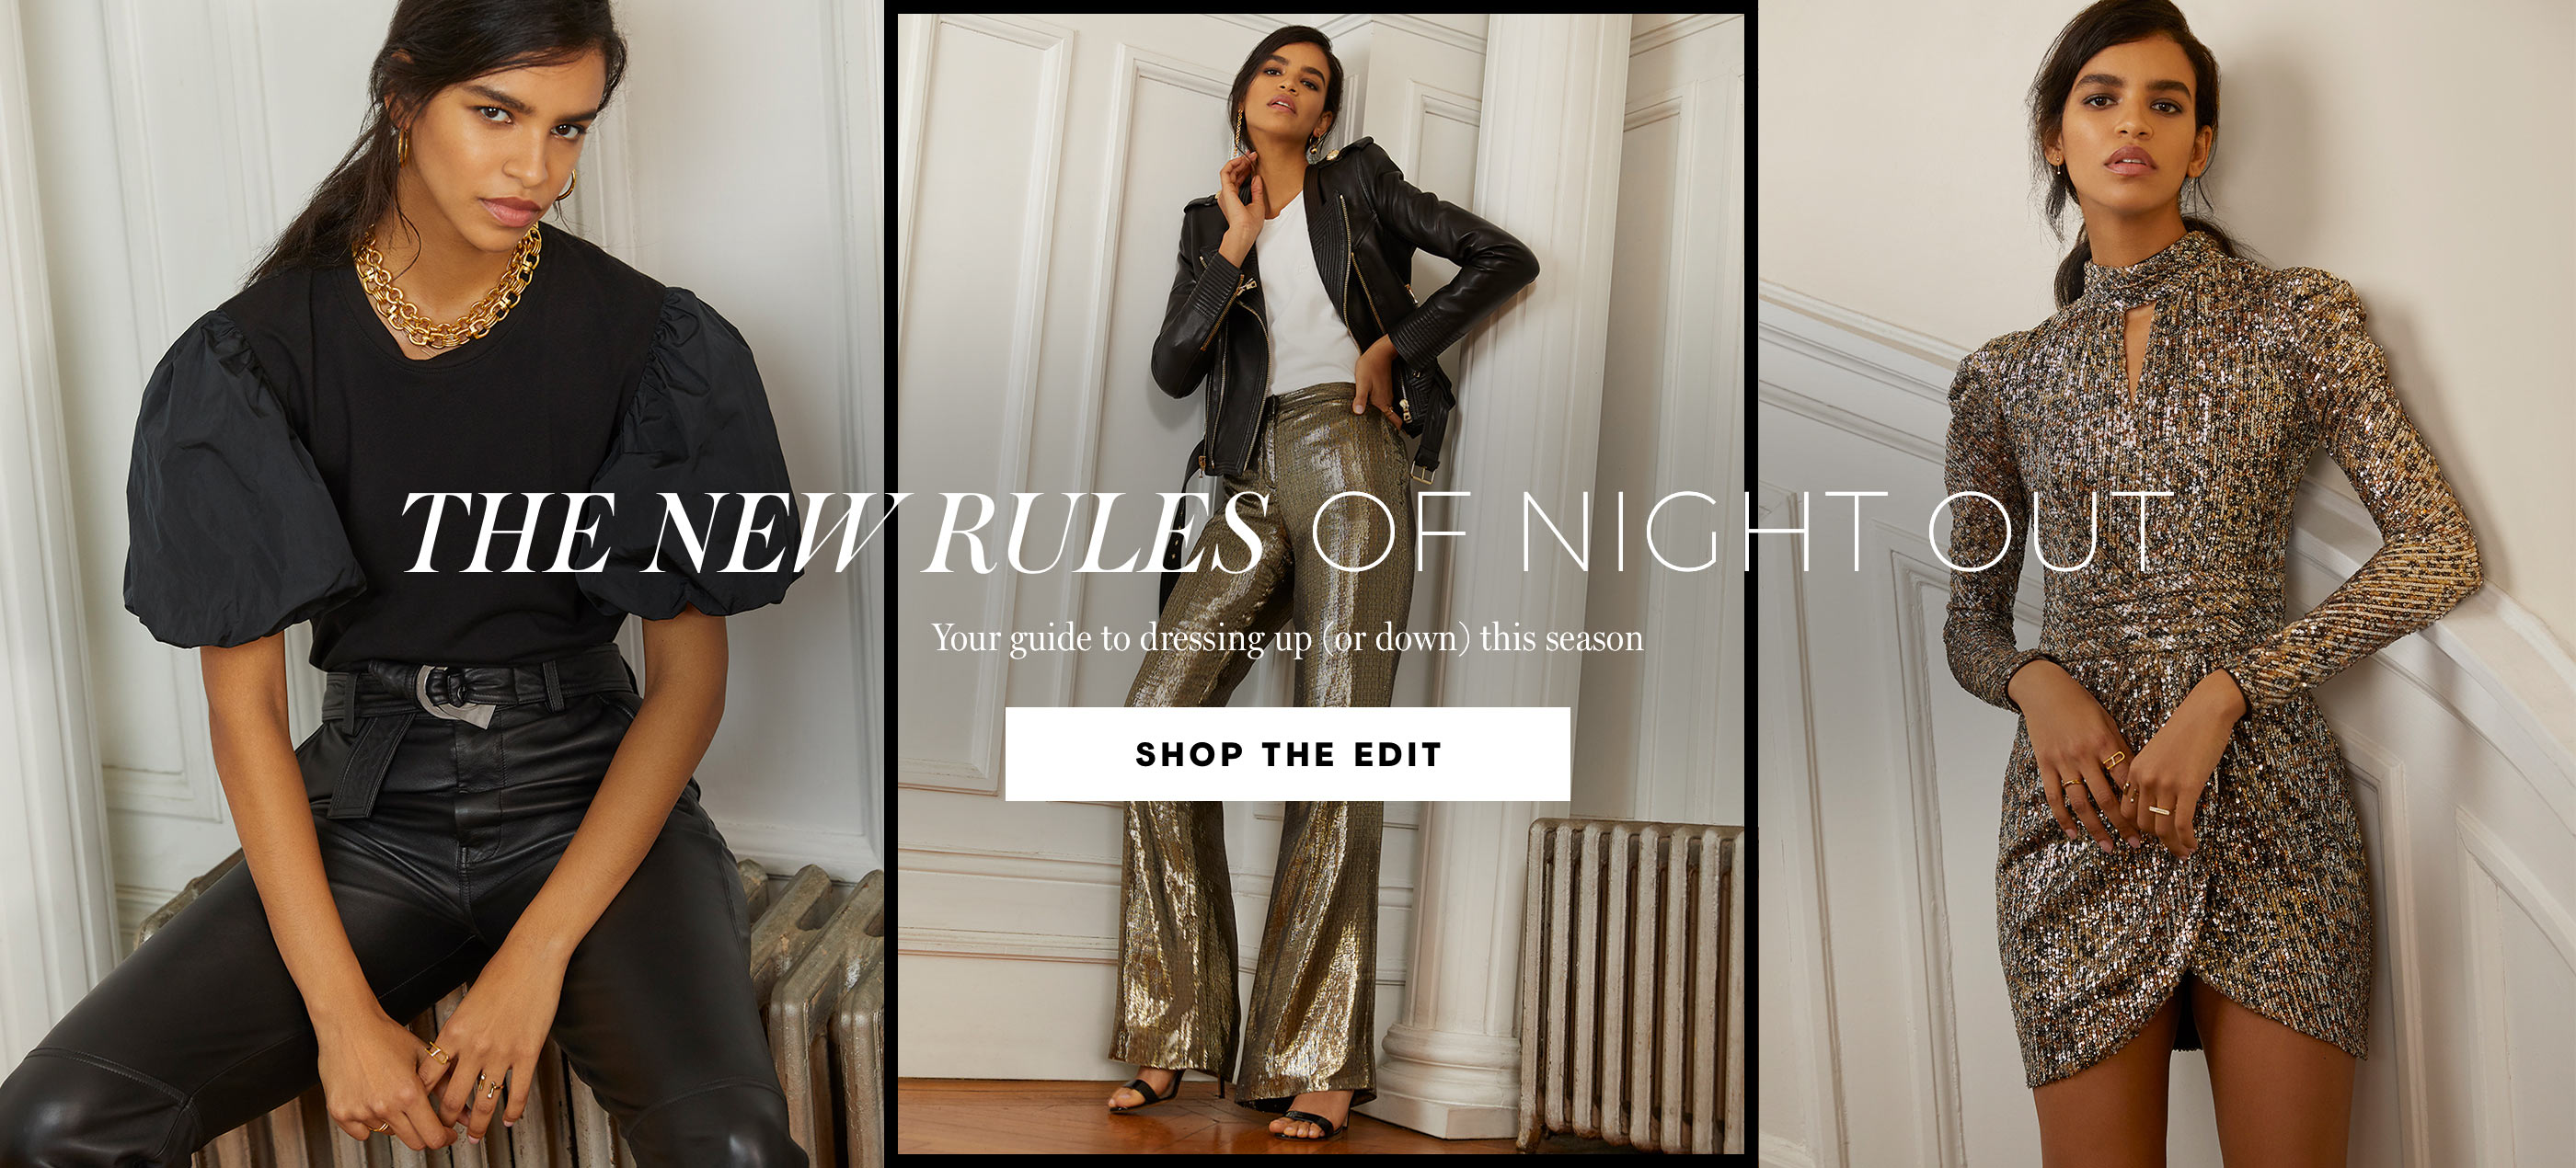 The New Rules Of Night Out  Your guide to dressing up (or down) this season